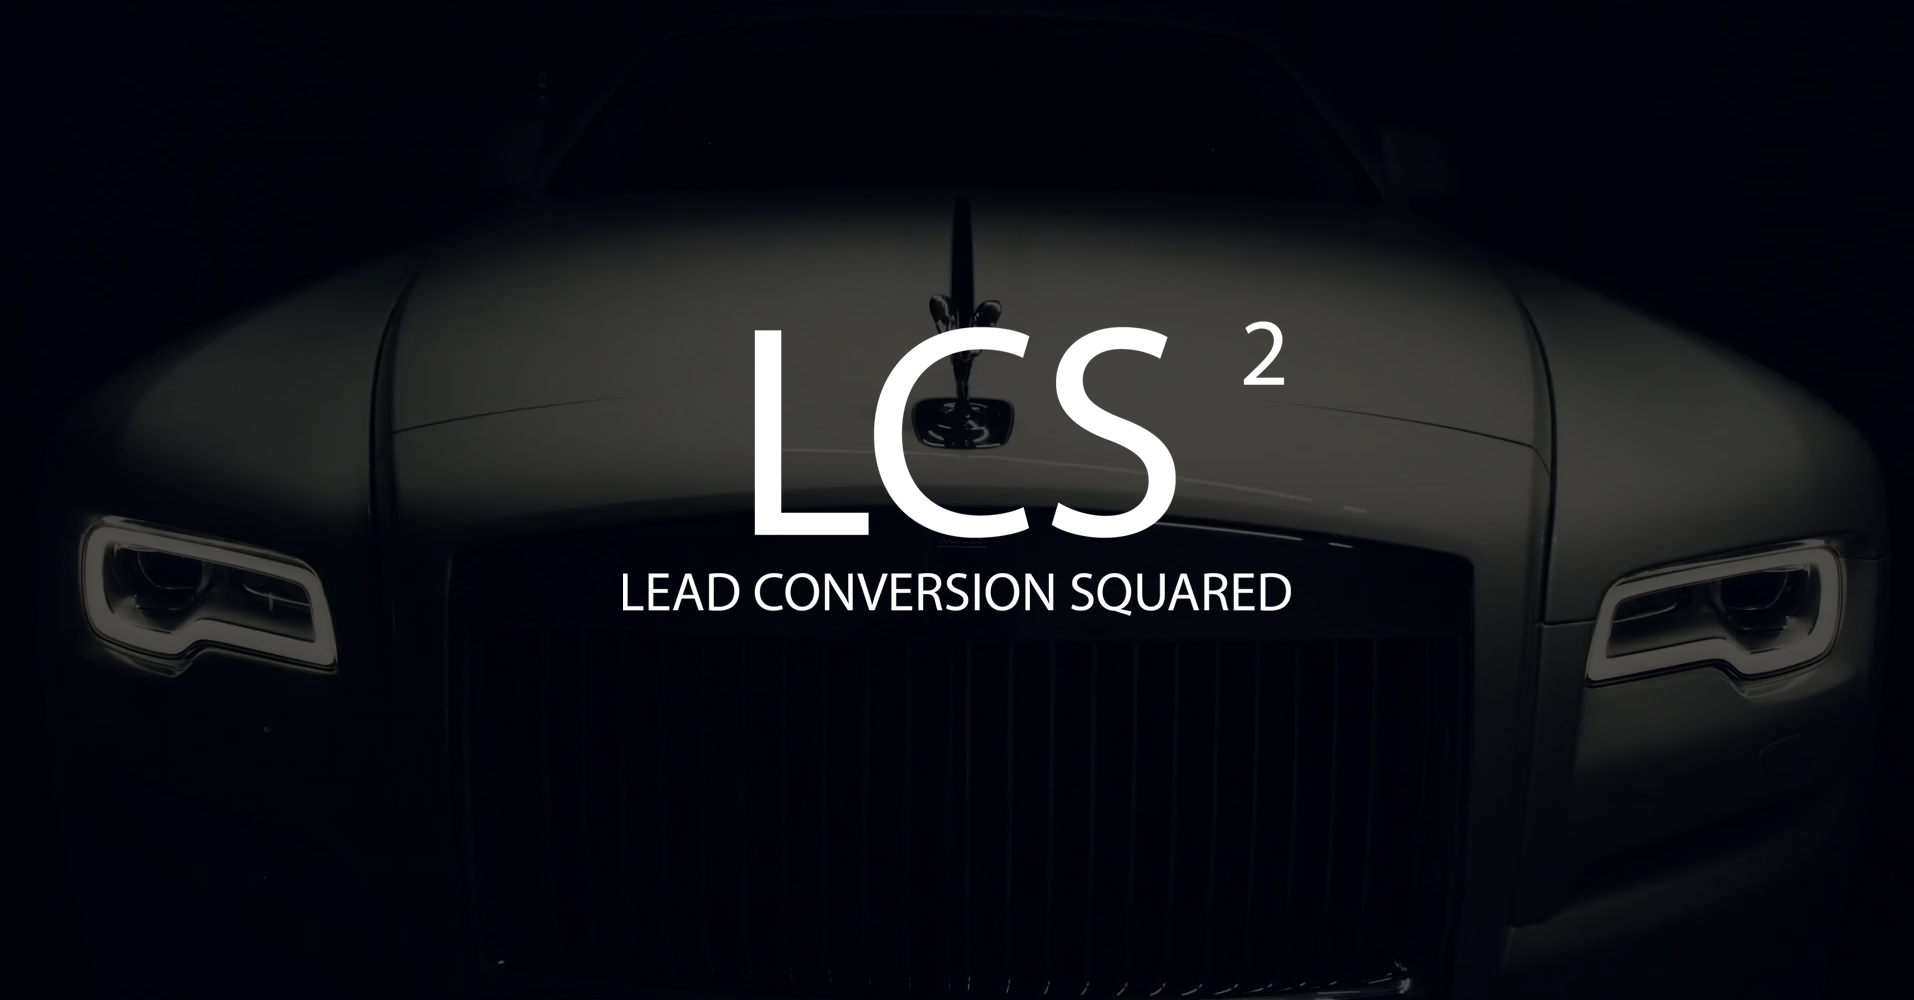 Lead Conversion System 2 LCS Squared 3 Day Business Masterclass – It's Time To Join The 2nd Biggest Digital Marketing Launch of  the Year!